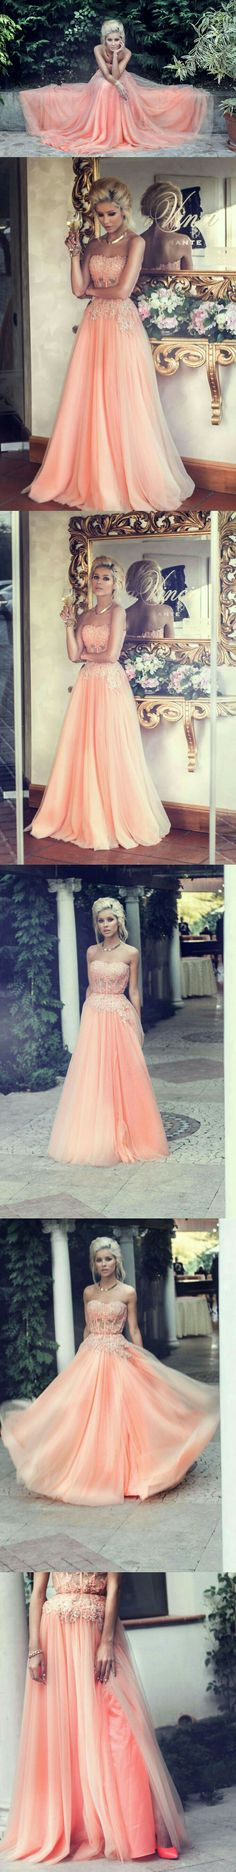 1a431287625e Hot Sales A-line Strapless Lace Appliqued Bodice Blush Pink Tulle Skirt  Long Prom Dresses Evening Gowns